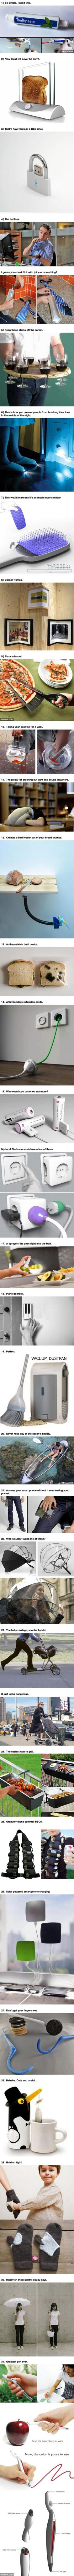 31 Inventions You Need For Life